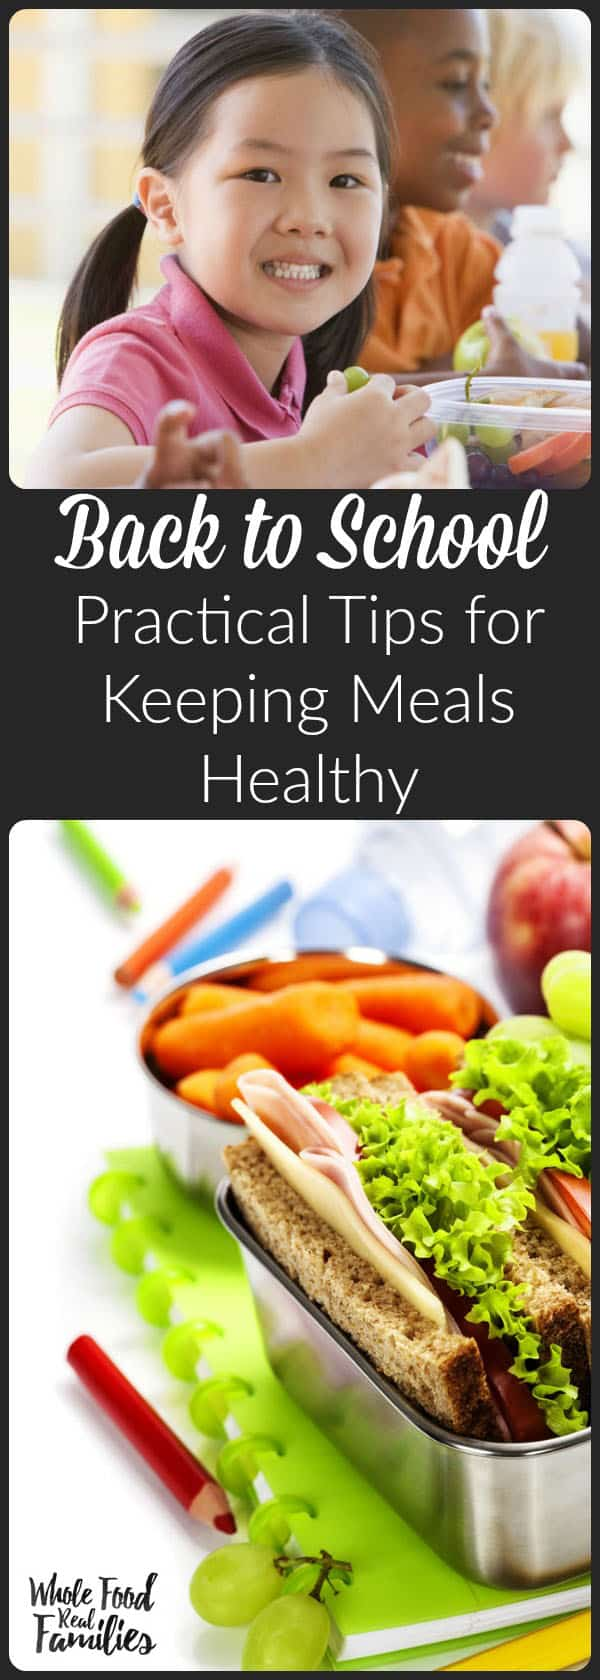 Back to School - Practical Tips for Keeping Meals Healthy